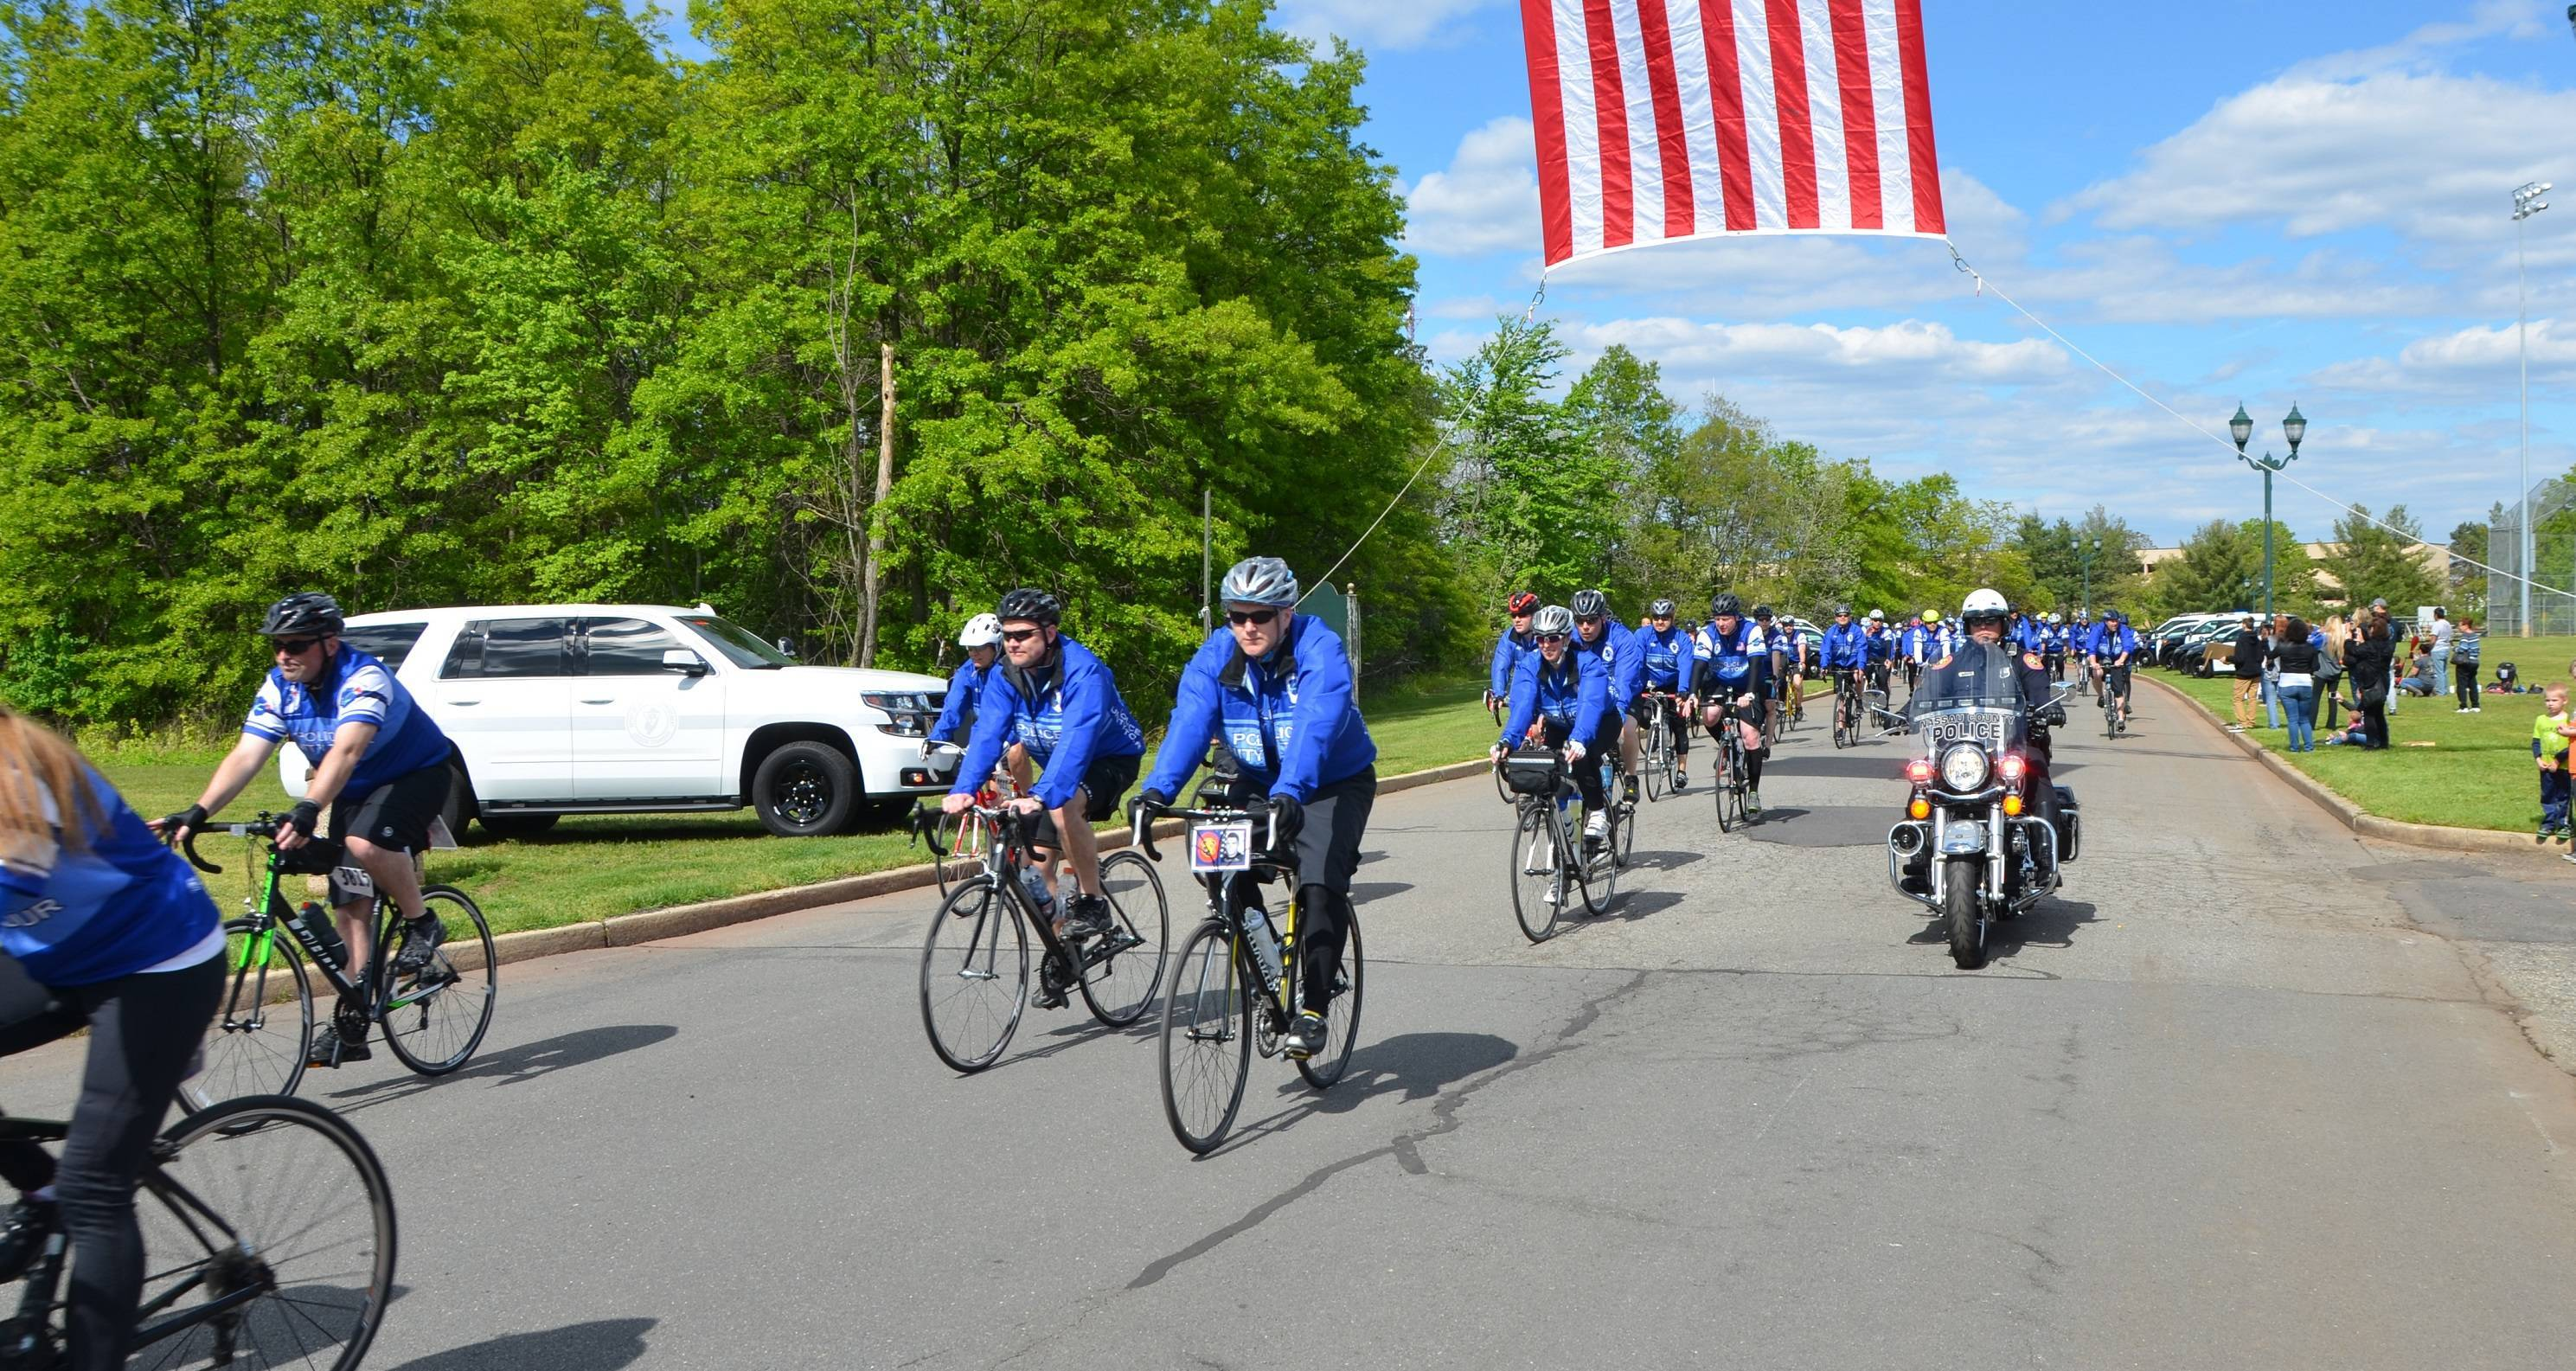 Police unity tour riders visit the edison municipal for Police tours